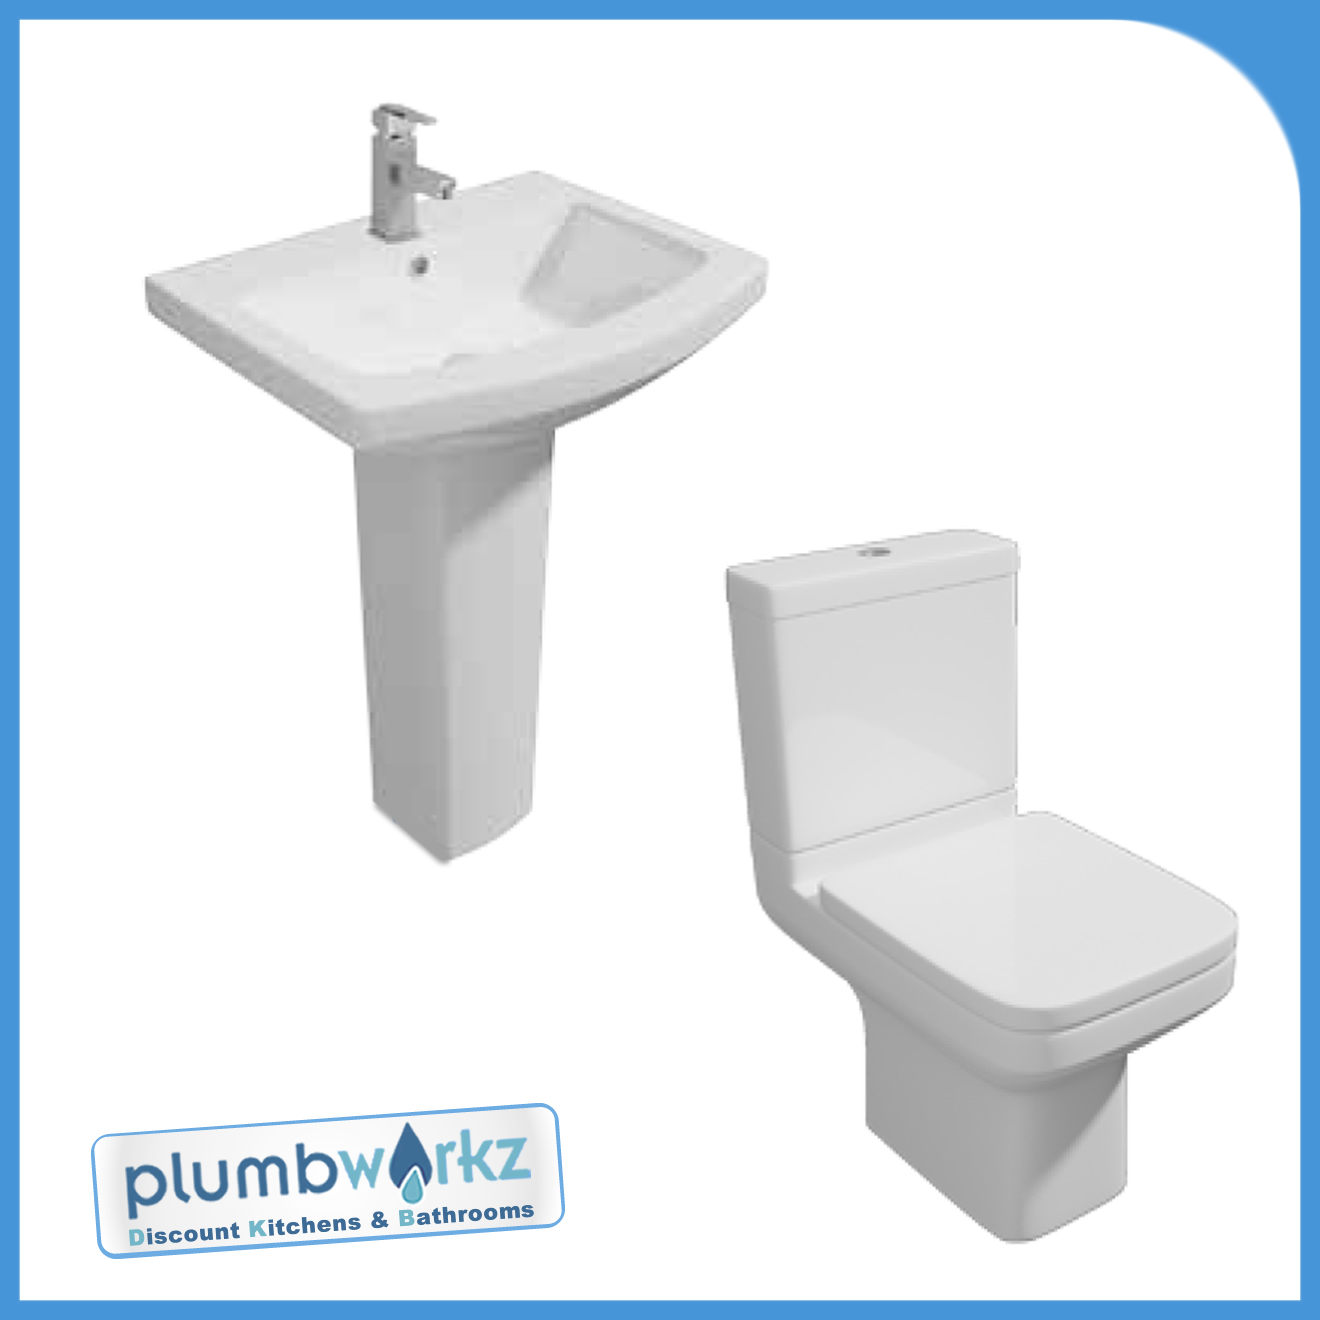 Trim toilet wc pan cistern basin sink pedestal ceramic for Cheap toilet and sink set